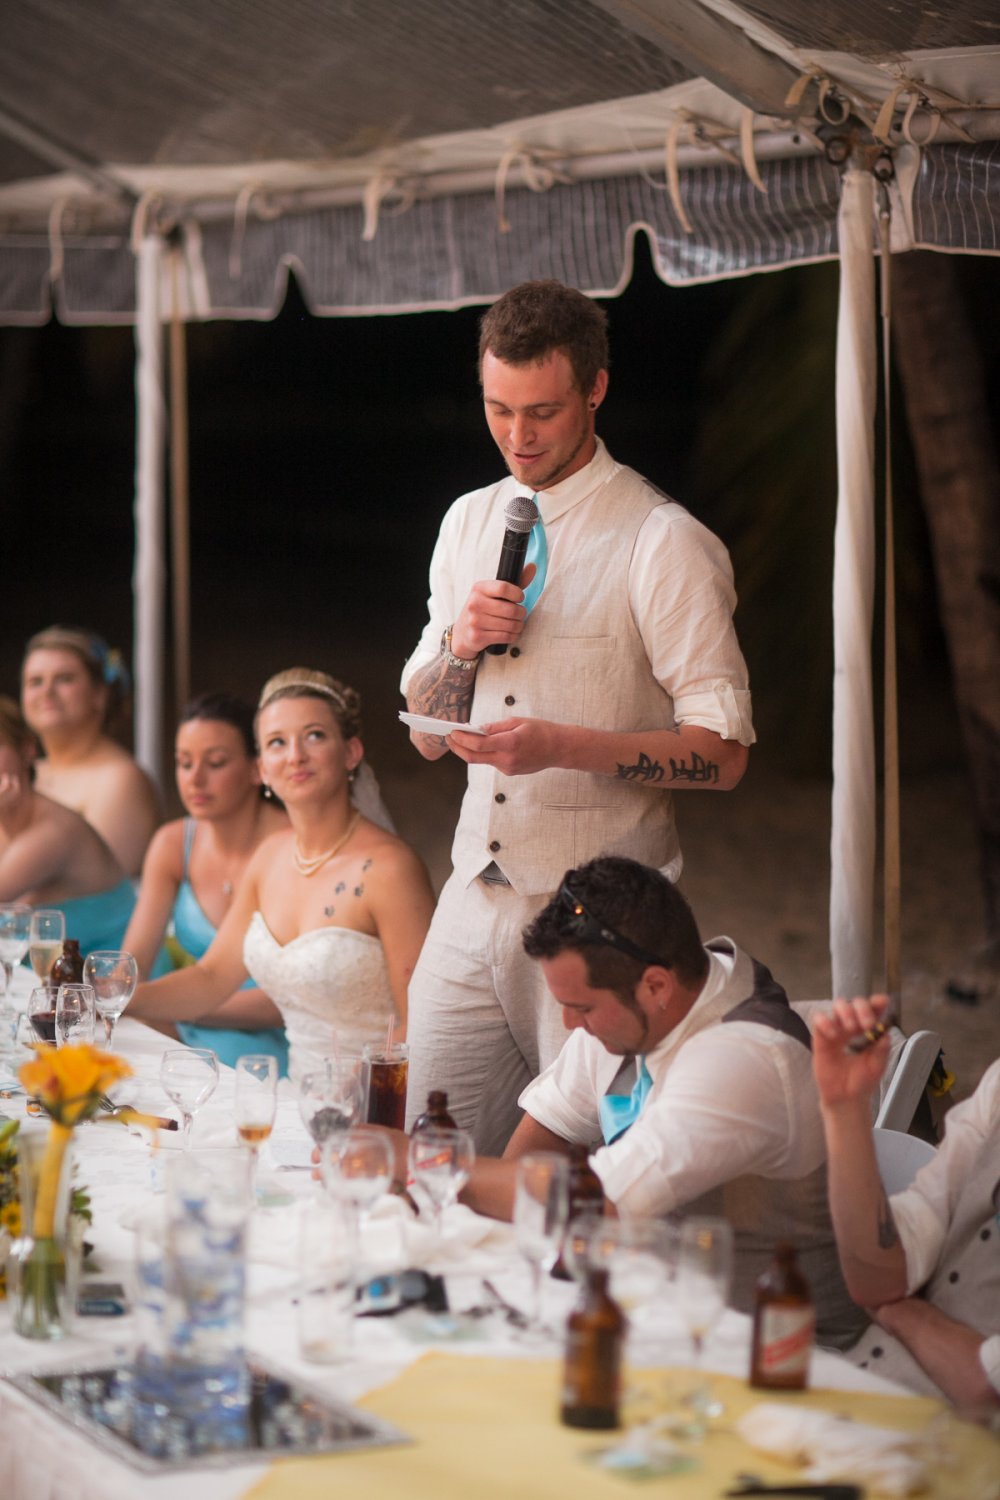 JF Hannigan Wedding Photography: Kat and Dan: a jamaican getaway 40